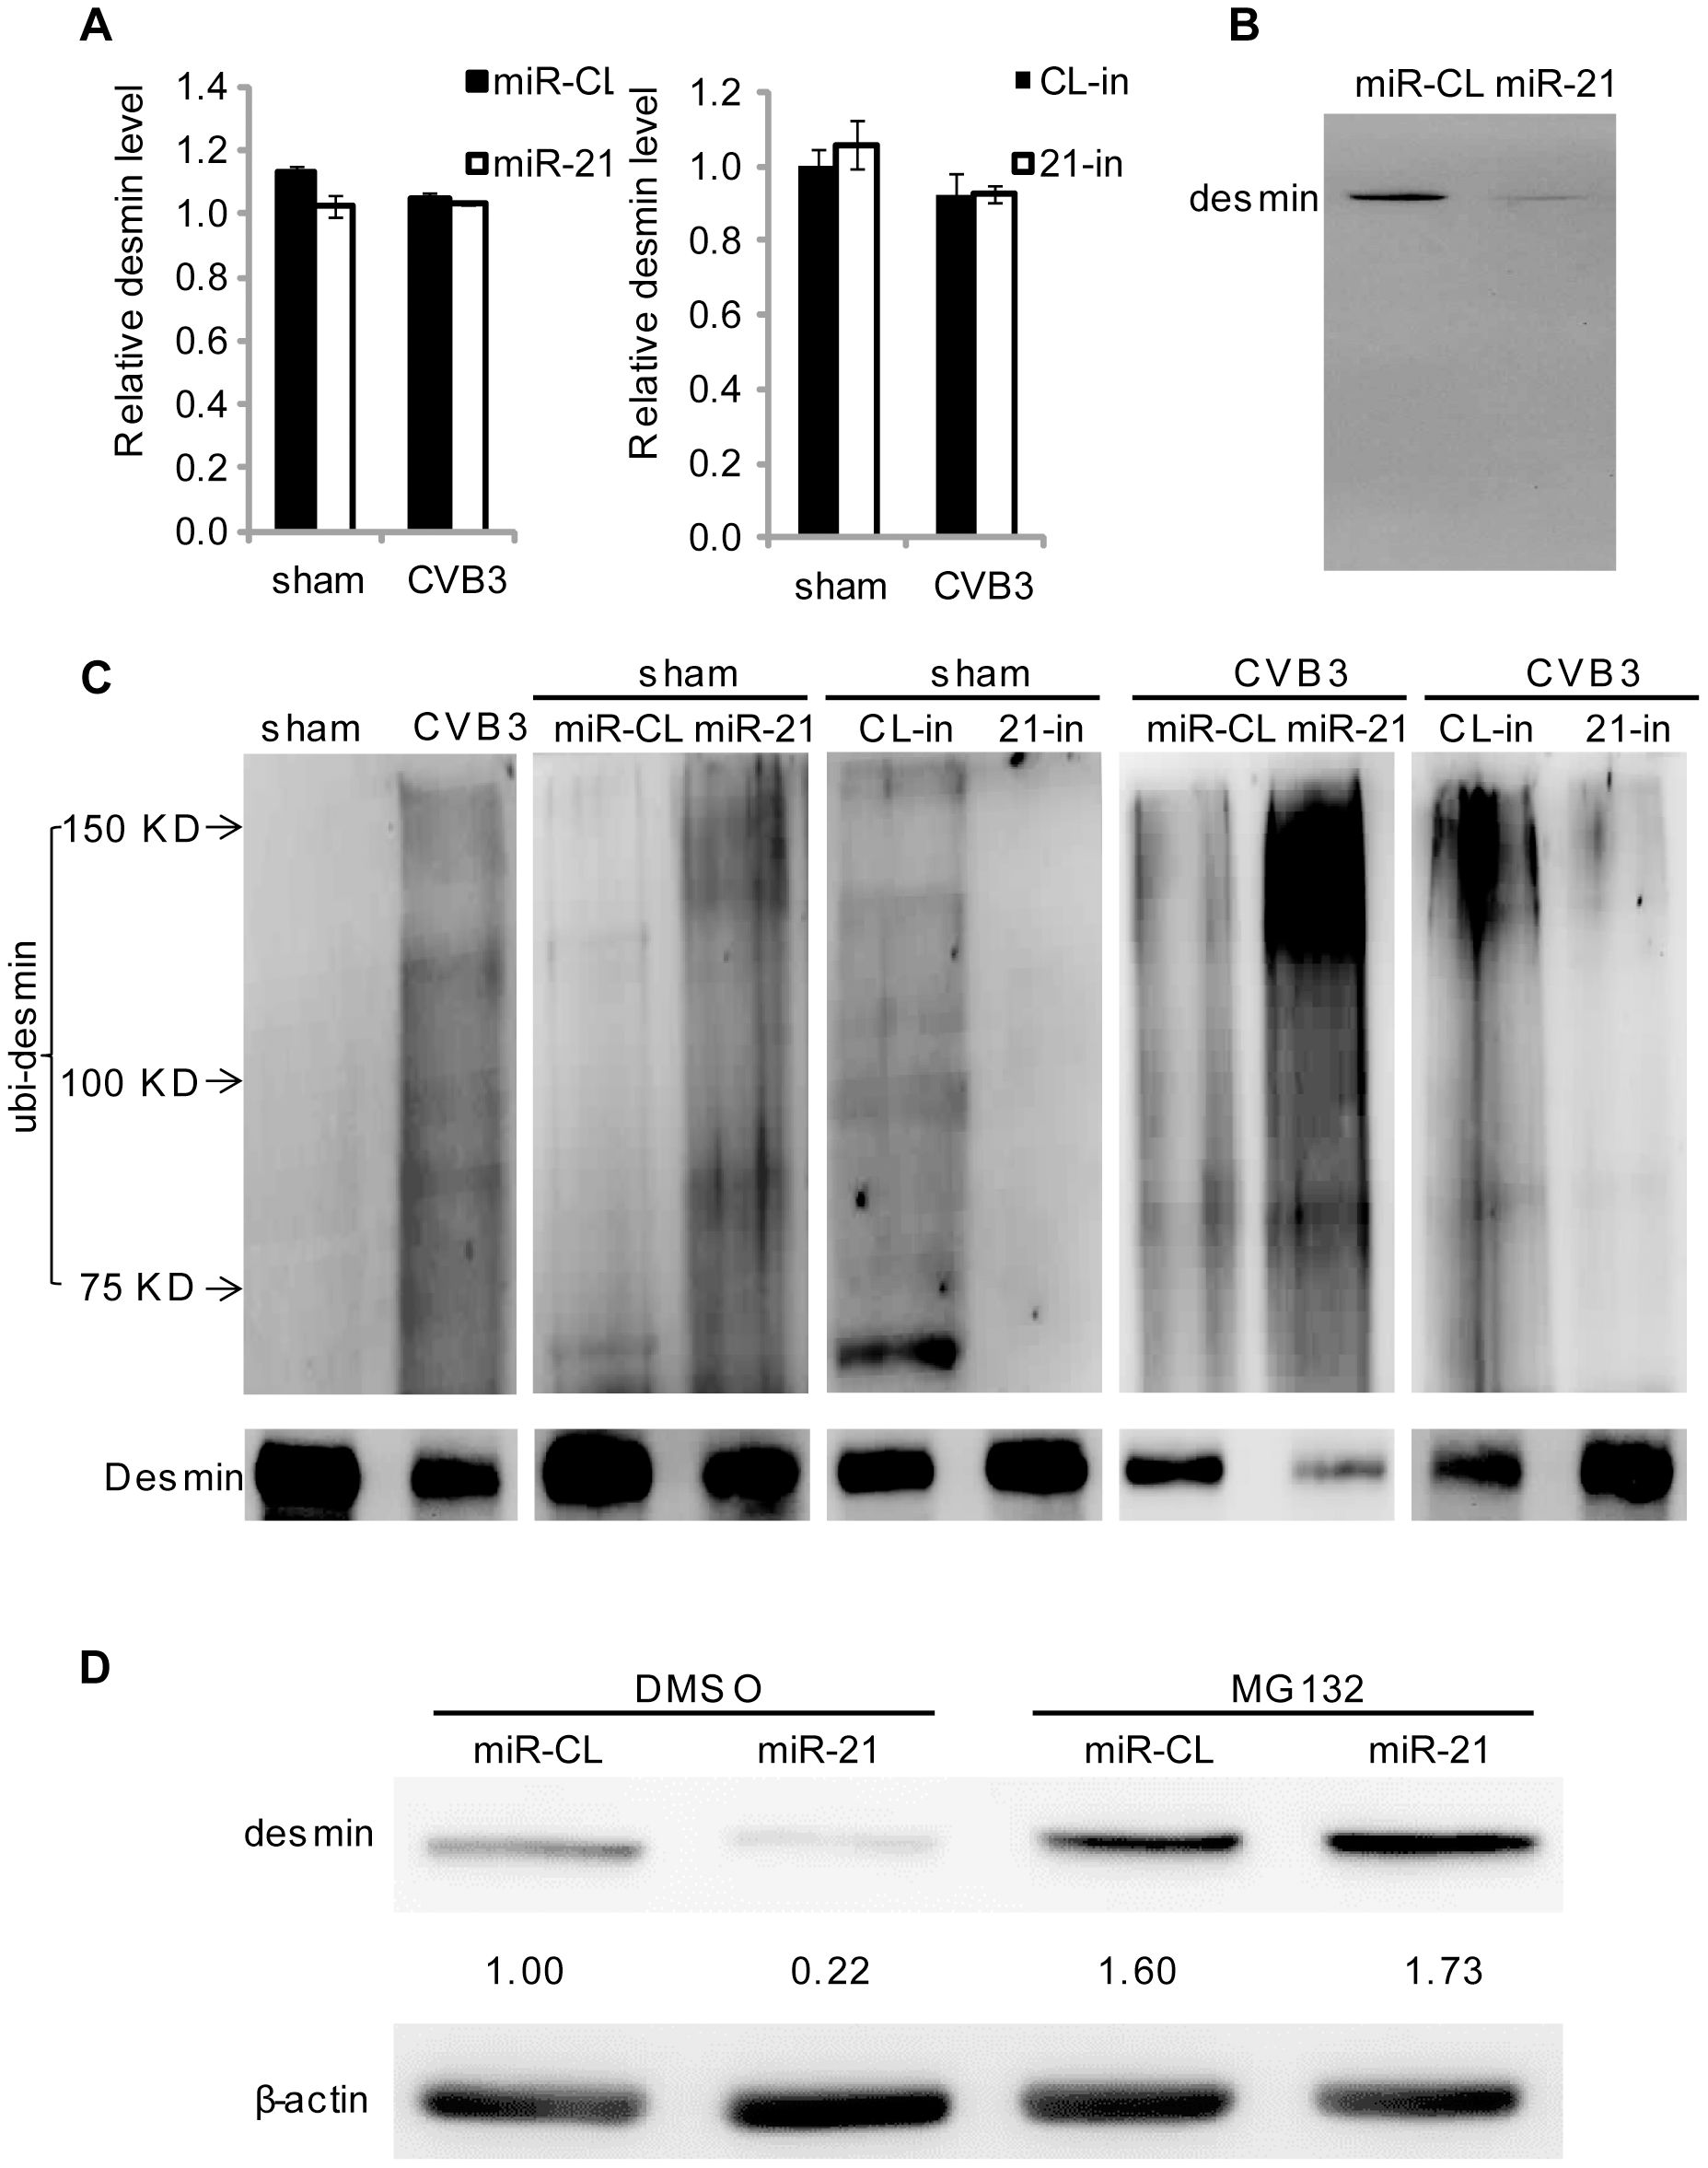 miR-21 promotes desmin degradation through the ubiquitin-proteasome pathway.